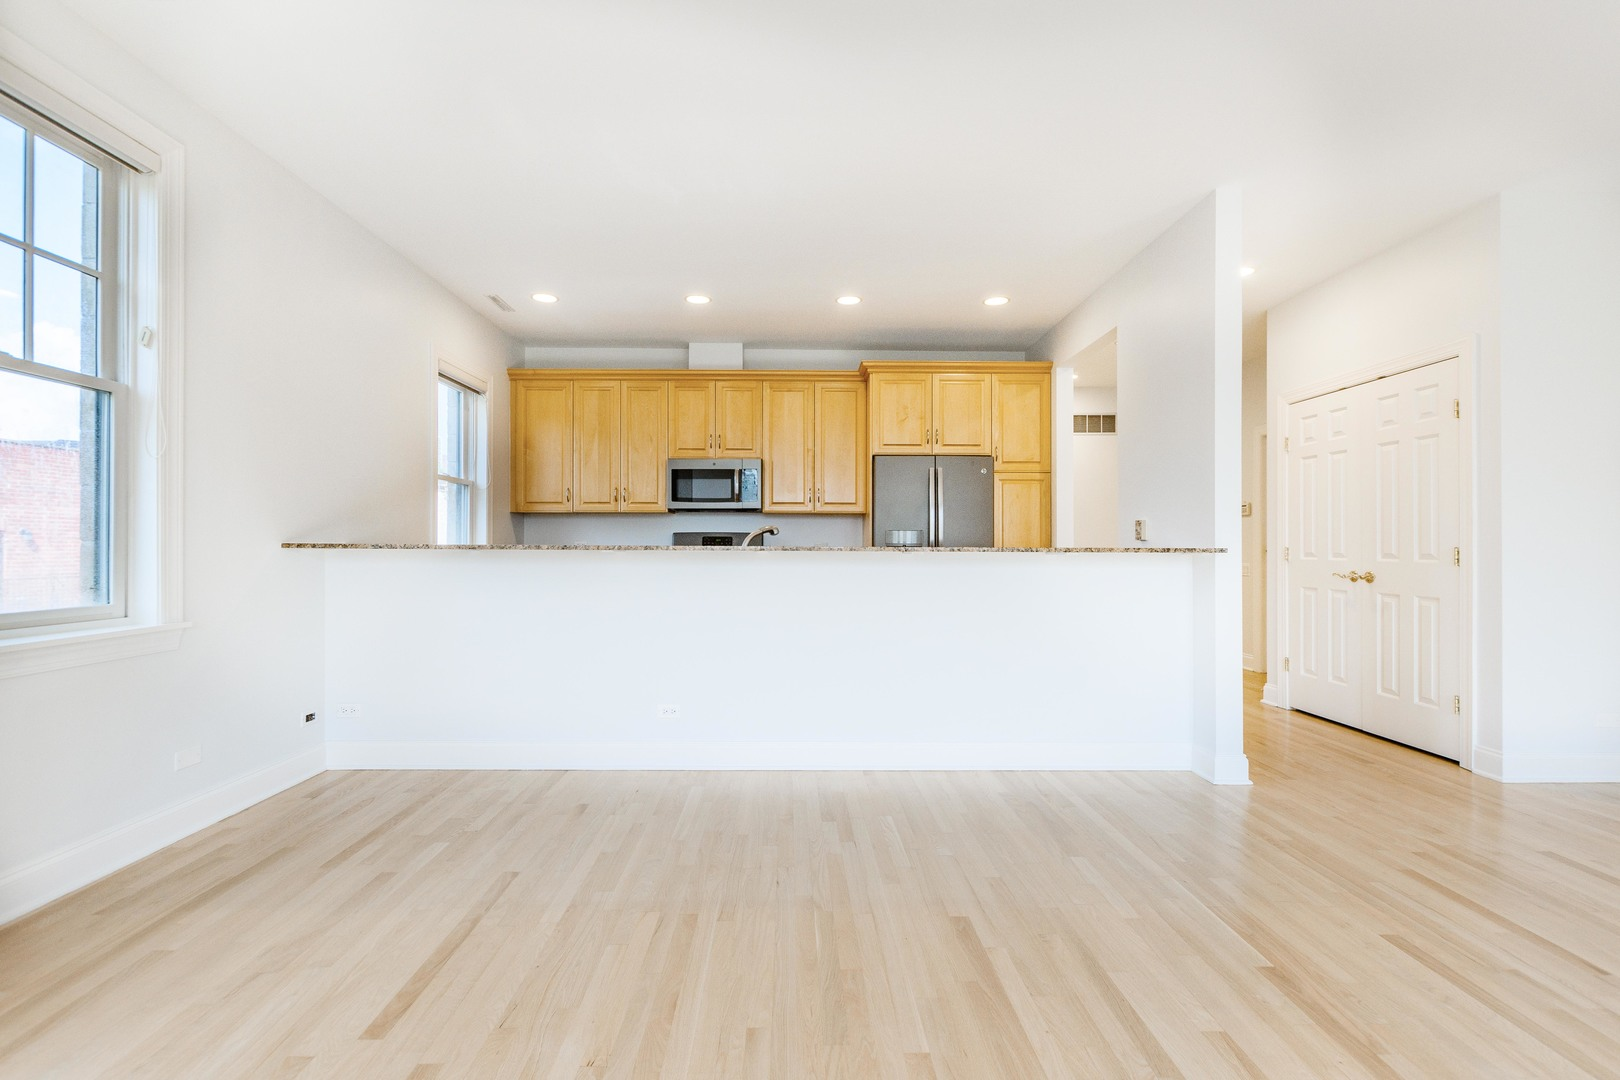 3121 N Orchard St apartments for rent at AptAmigo